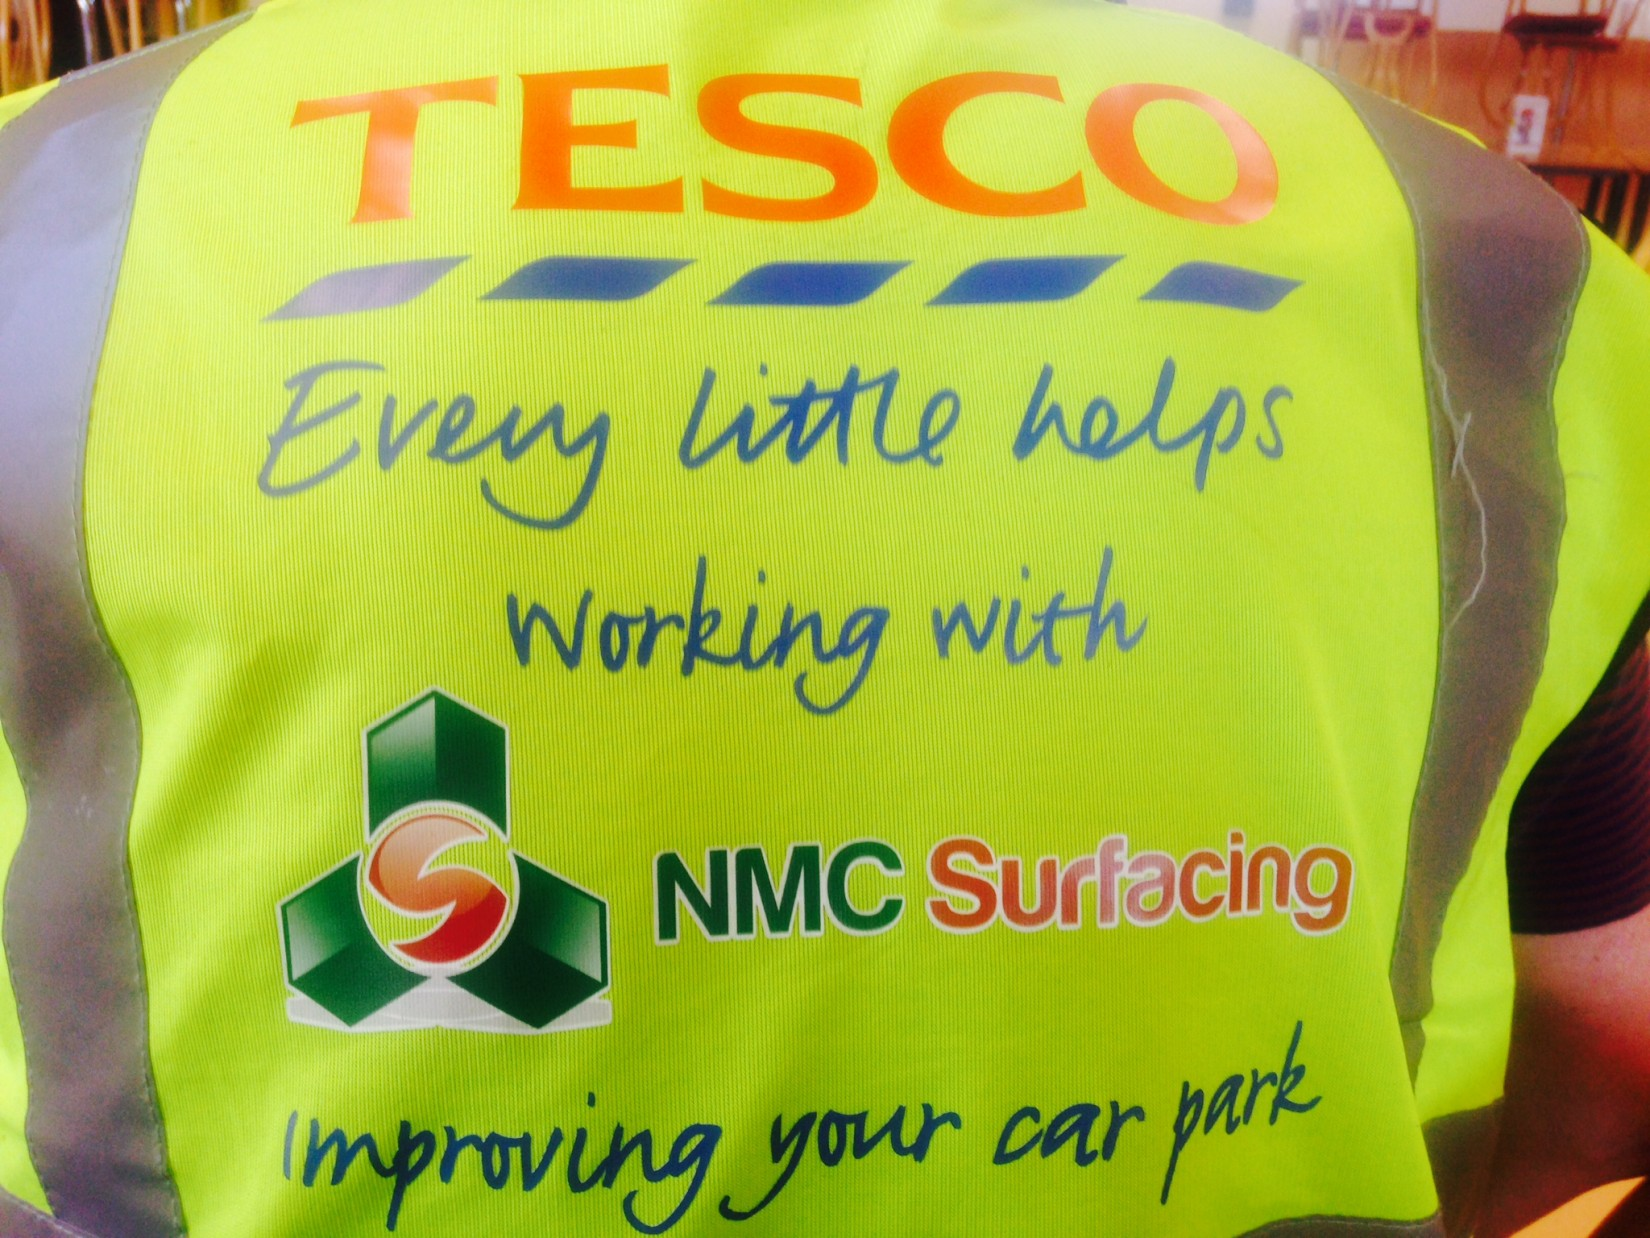 Urgently need this tesco every little helps font?? - forum   dafont com